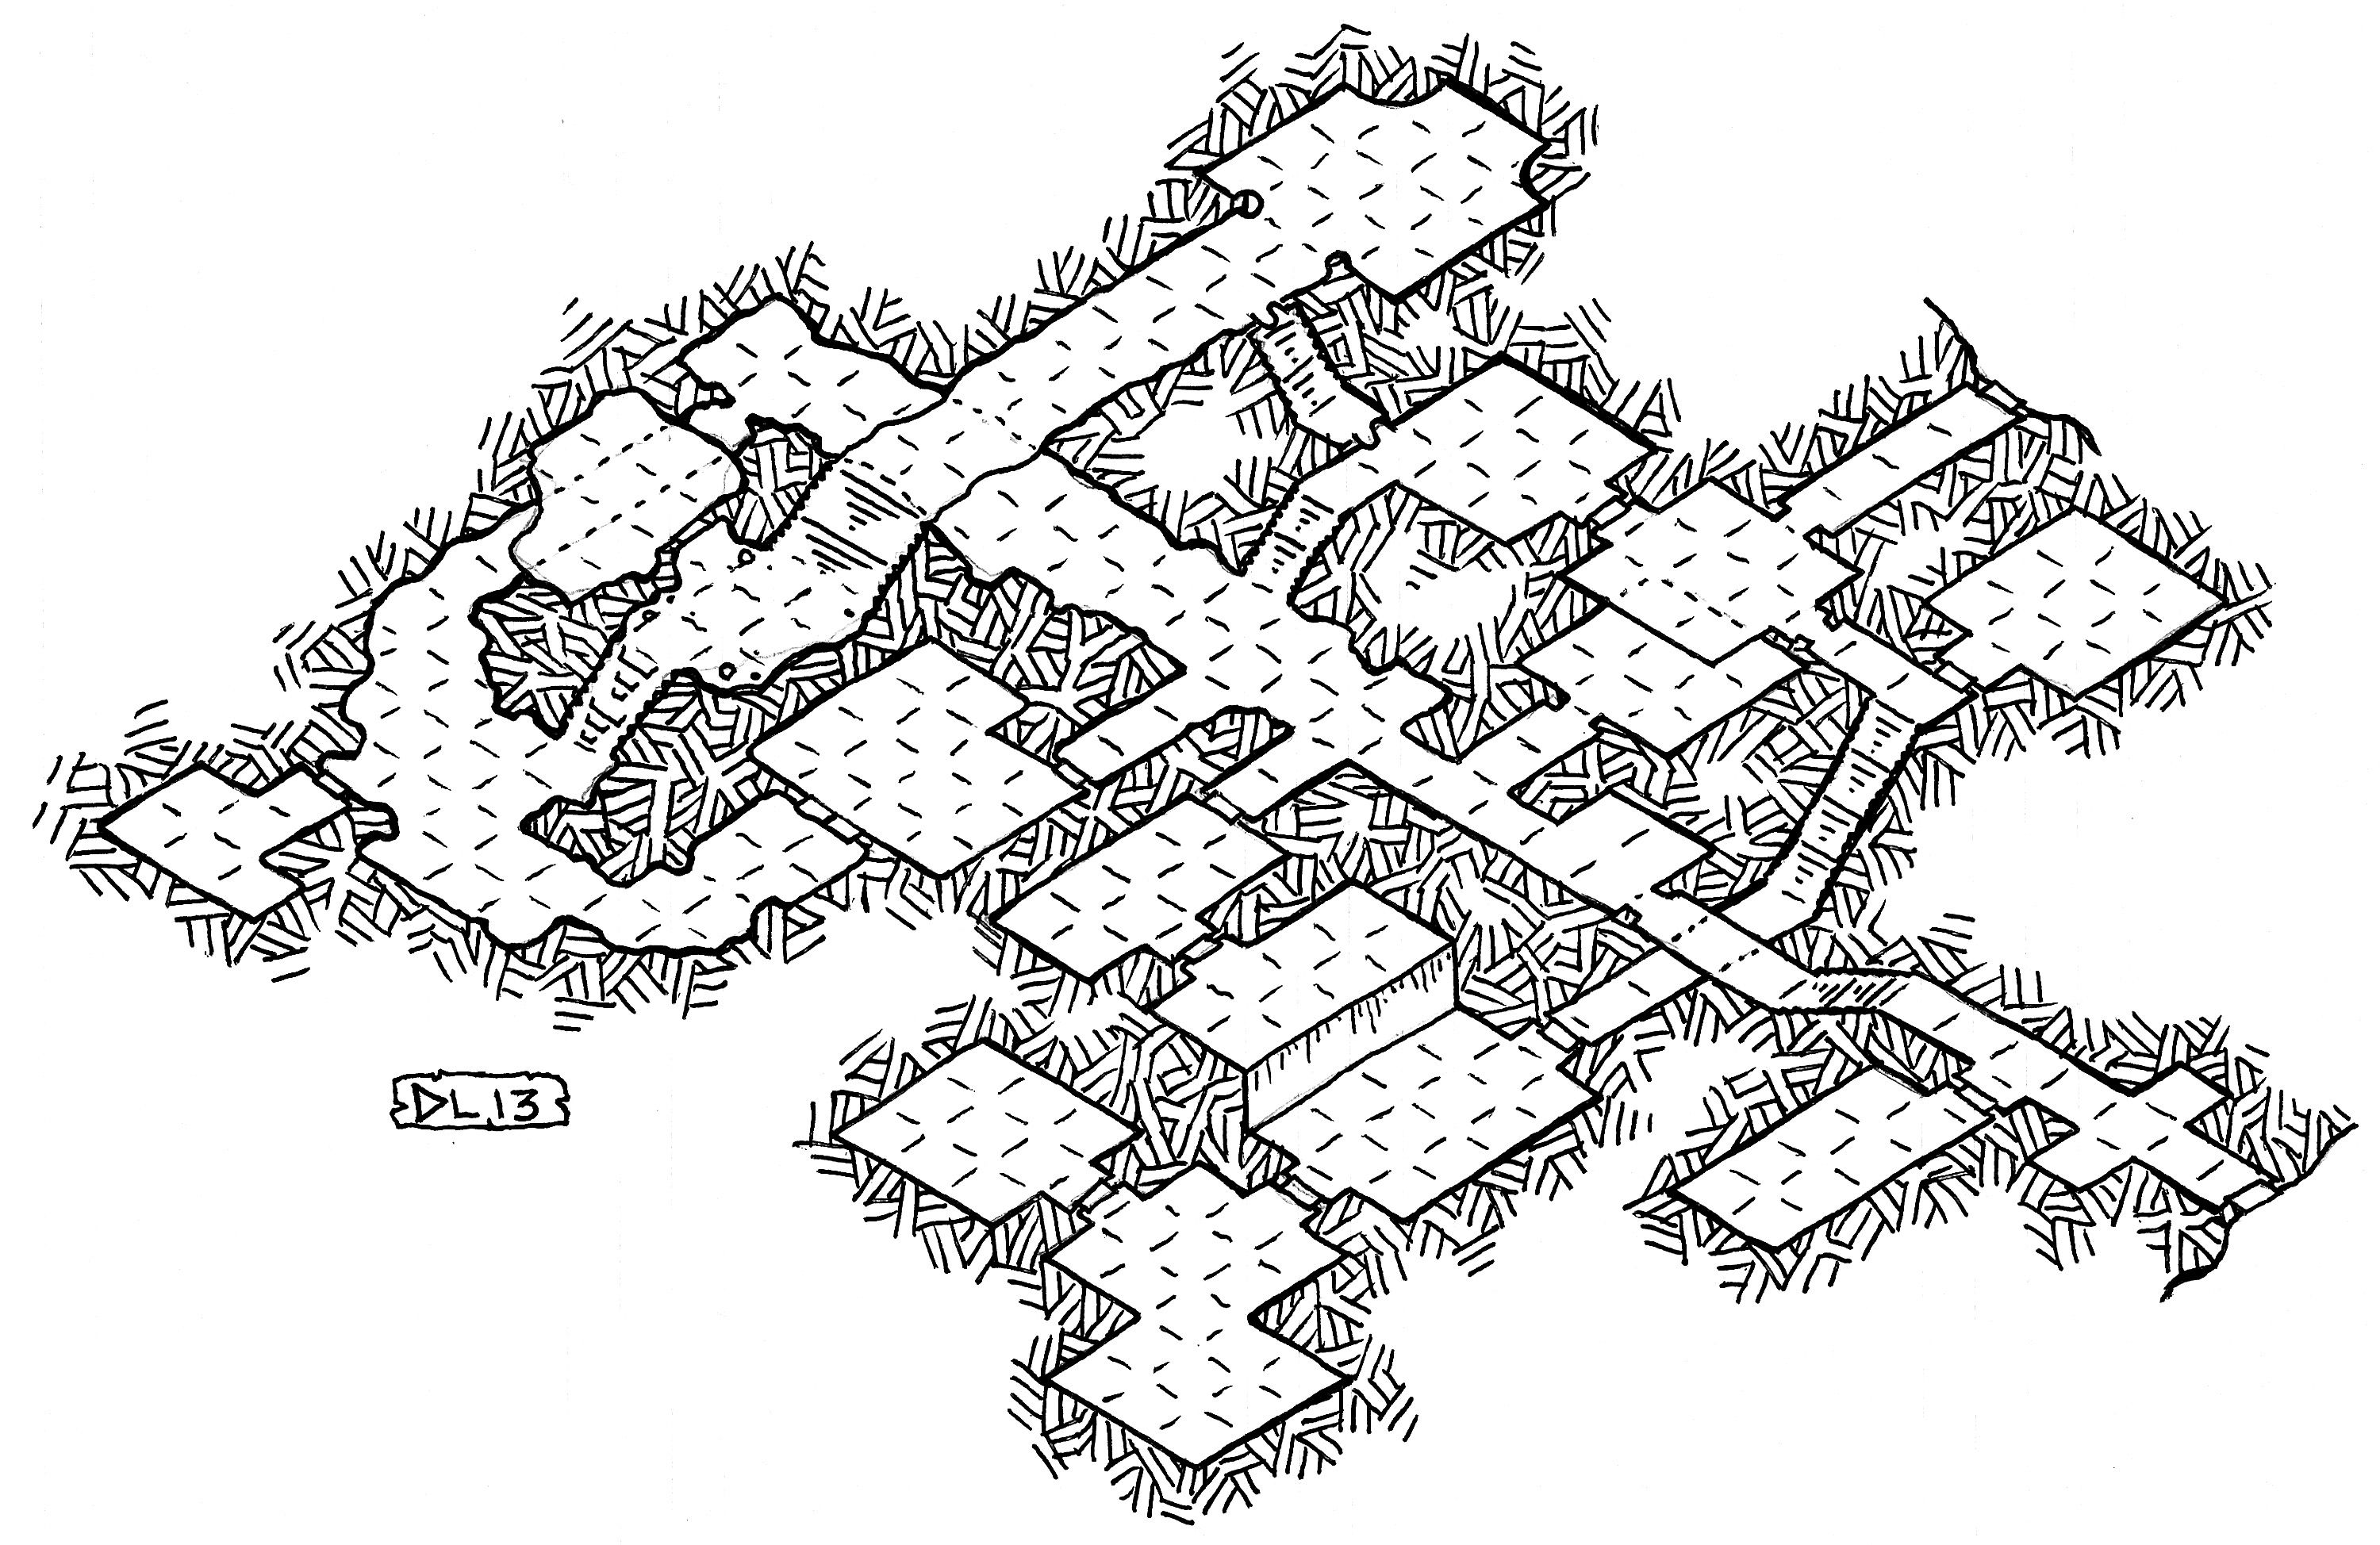 A while back I posted my OSR logo and some rough experiments I did with isometric graph paper. The same day that I drew those, I finished off with this map - a nice full-page isometric dungeon to r...